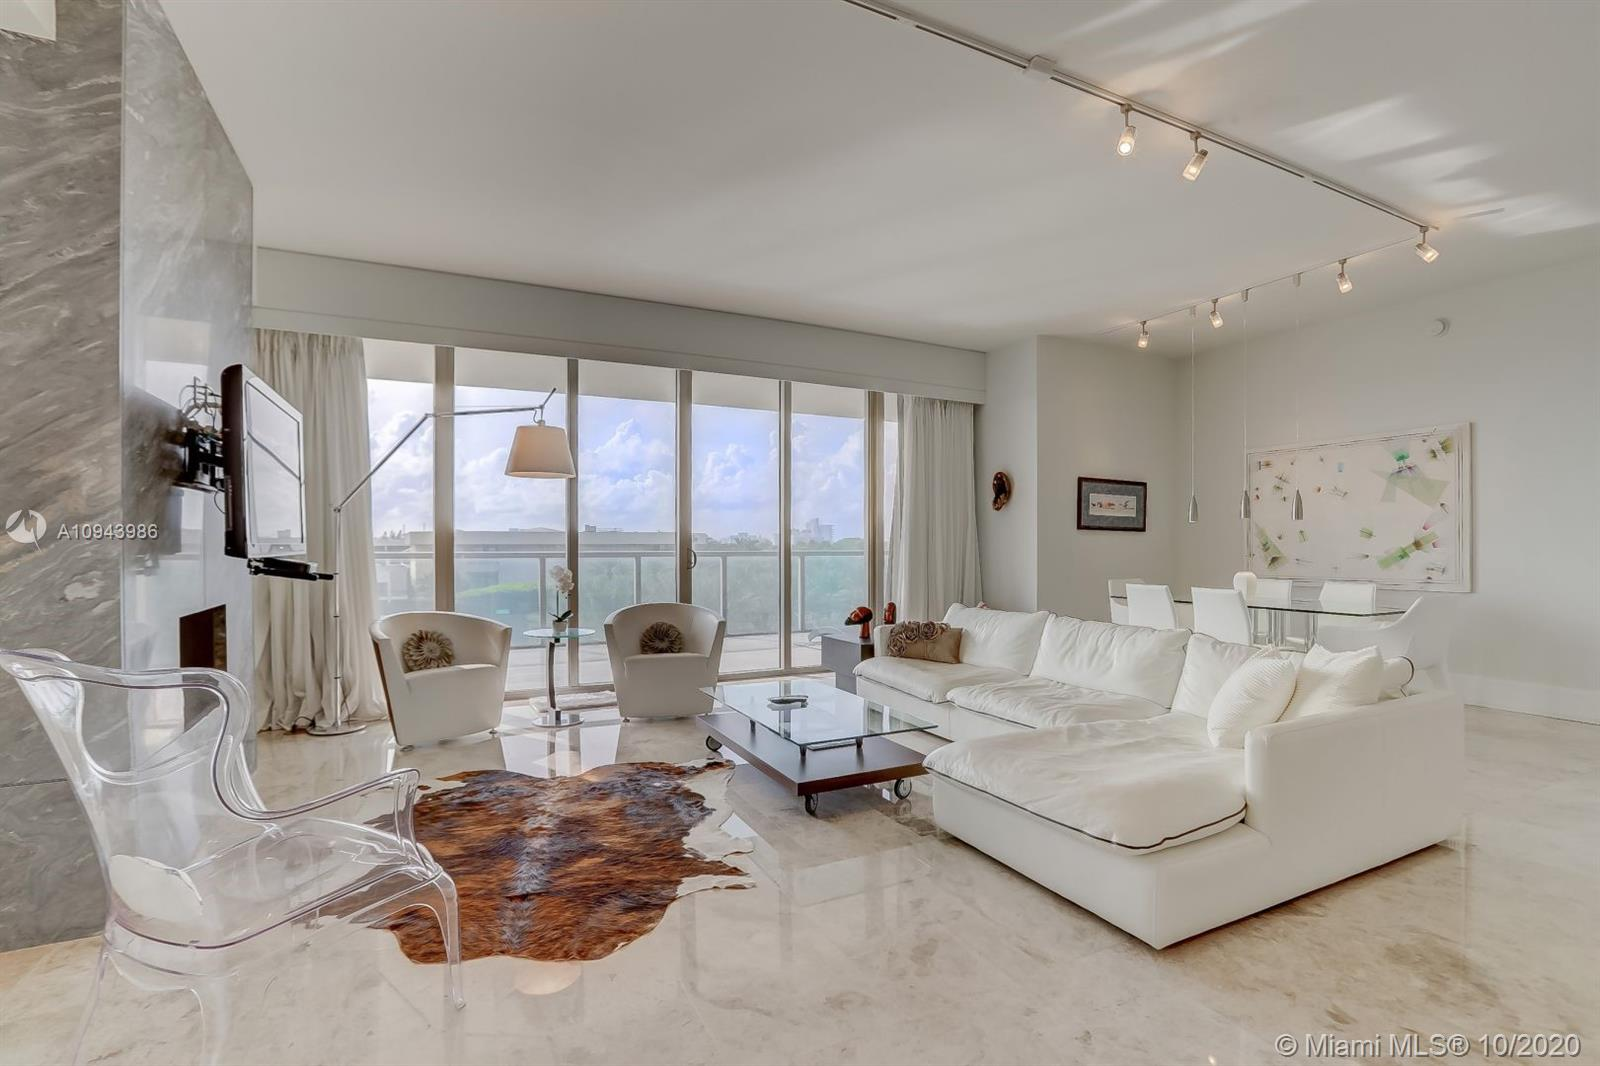 Welcome home to the most luxurious building in Bal Harbour, the St. Regis. The unit has been completely remodeled with designer finishes. Enjoy luxury living with park and skyline views from soaring glass walls and extra deep terraces.  Enjoy a surplus of natural lighting with floor-to-ceiling windows, open gorgeous chef's kitchen, wine storage & double ovens; generous living areas and world class amenities. This includes access to the five star resort spa, oceanfront cabanas, 24-hour concierge, valet parking, housekeeping, room service, chef services, and more!